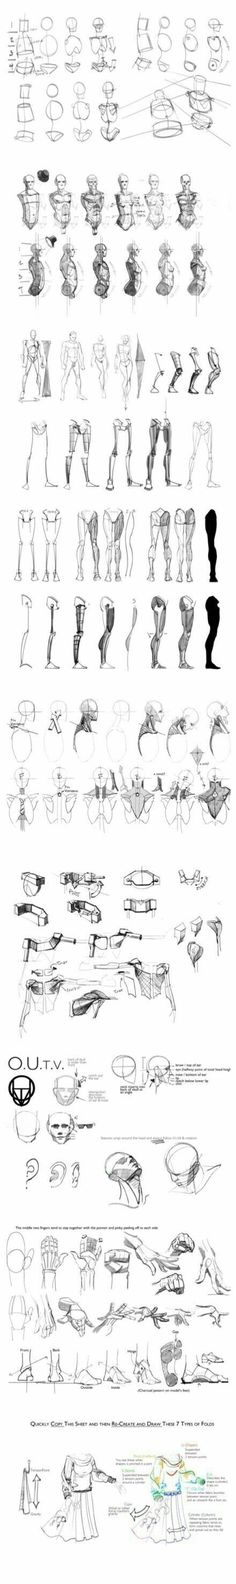 Anatomy Drawing Tutorial Guide Reference How To Draw Anime Master Anime Ecchi Picture Wallpapers… Anatomy Sketches, Anatomy Drawing, Anatomy Art, Drawing Sketches, Art Drawings, Human Anatomy, Sketching, Zbrush Anatomy, Body Sketches